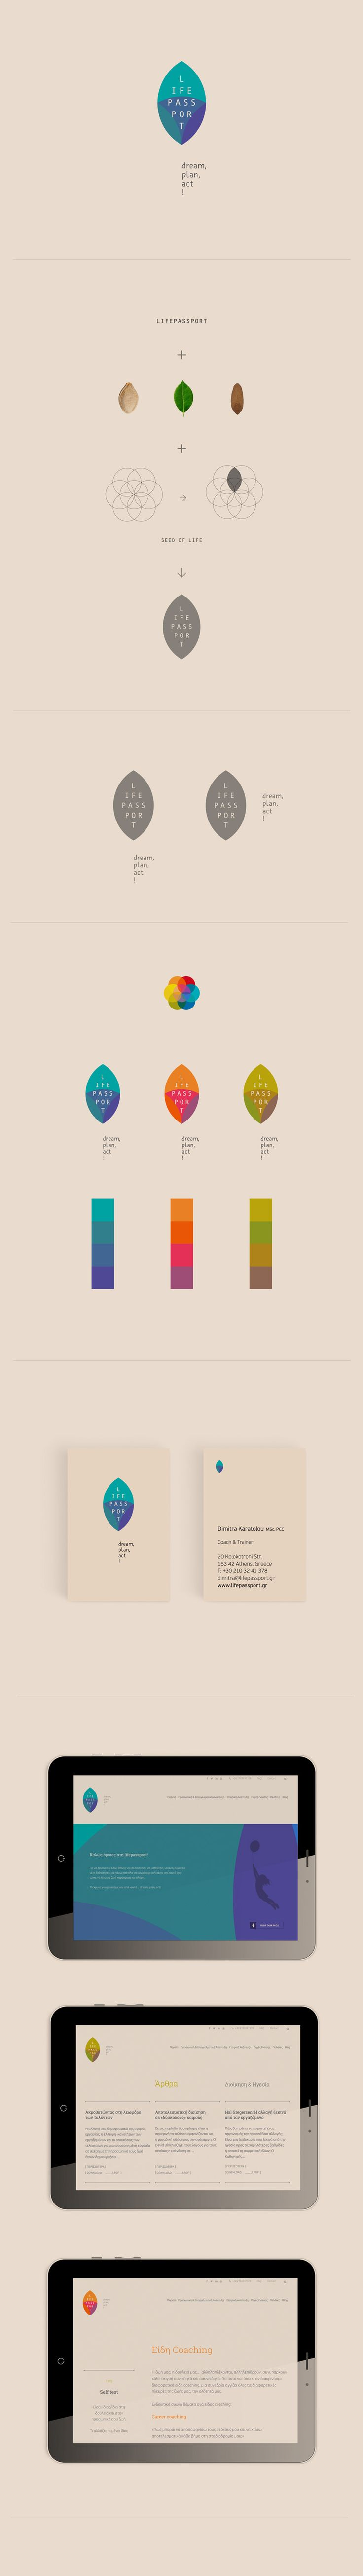 lifepassport - dream, plan, act! on Behance